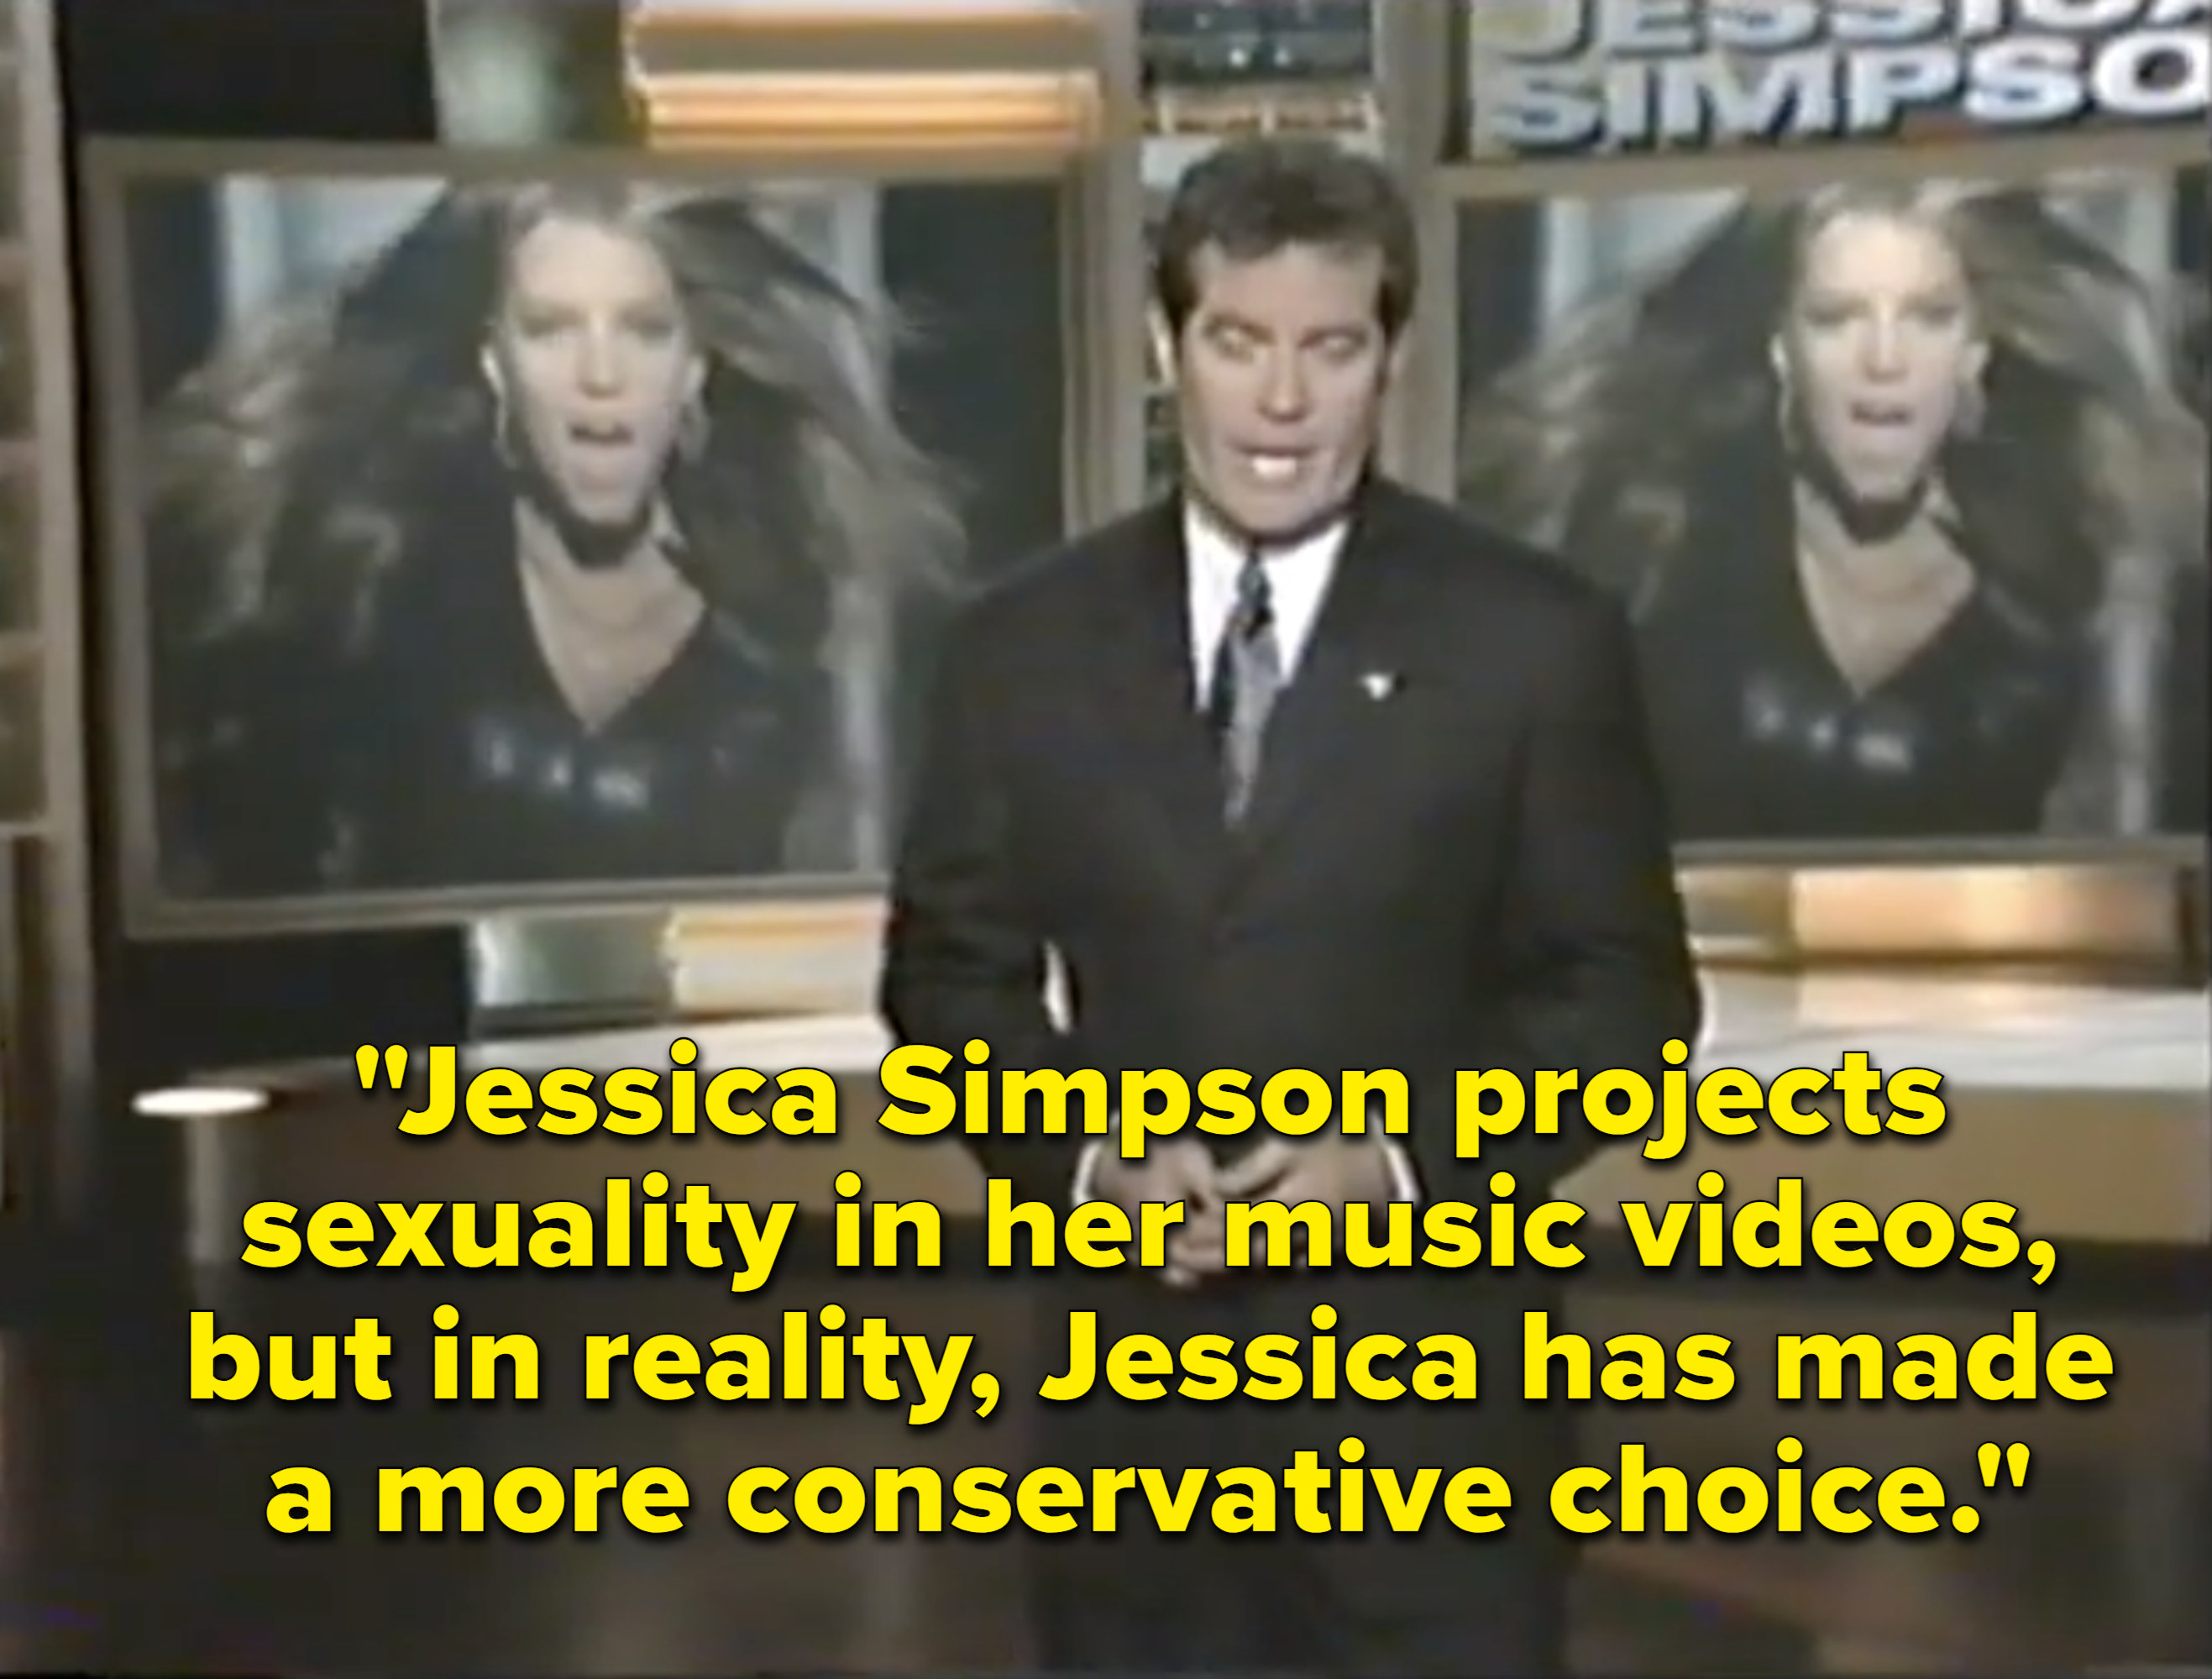 An Entertainment Tonight host explaining that Jessica Simpson exudes sex in her music videos but is a virgin in real life